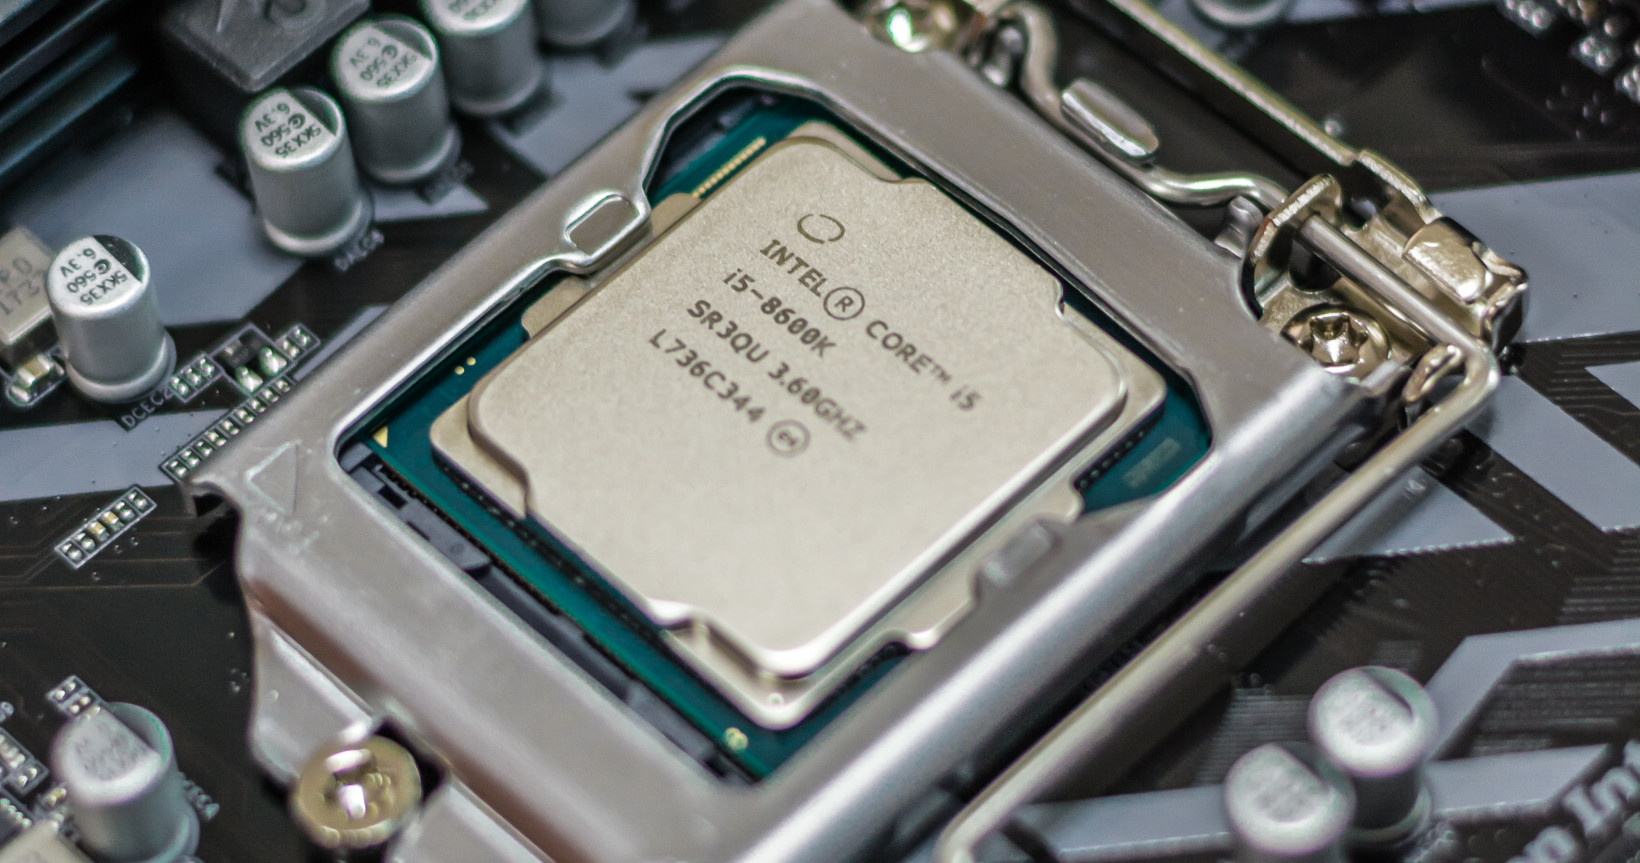 BitDefender researchers discover troubling new security flaw in all modern Intel processors